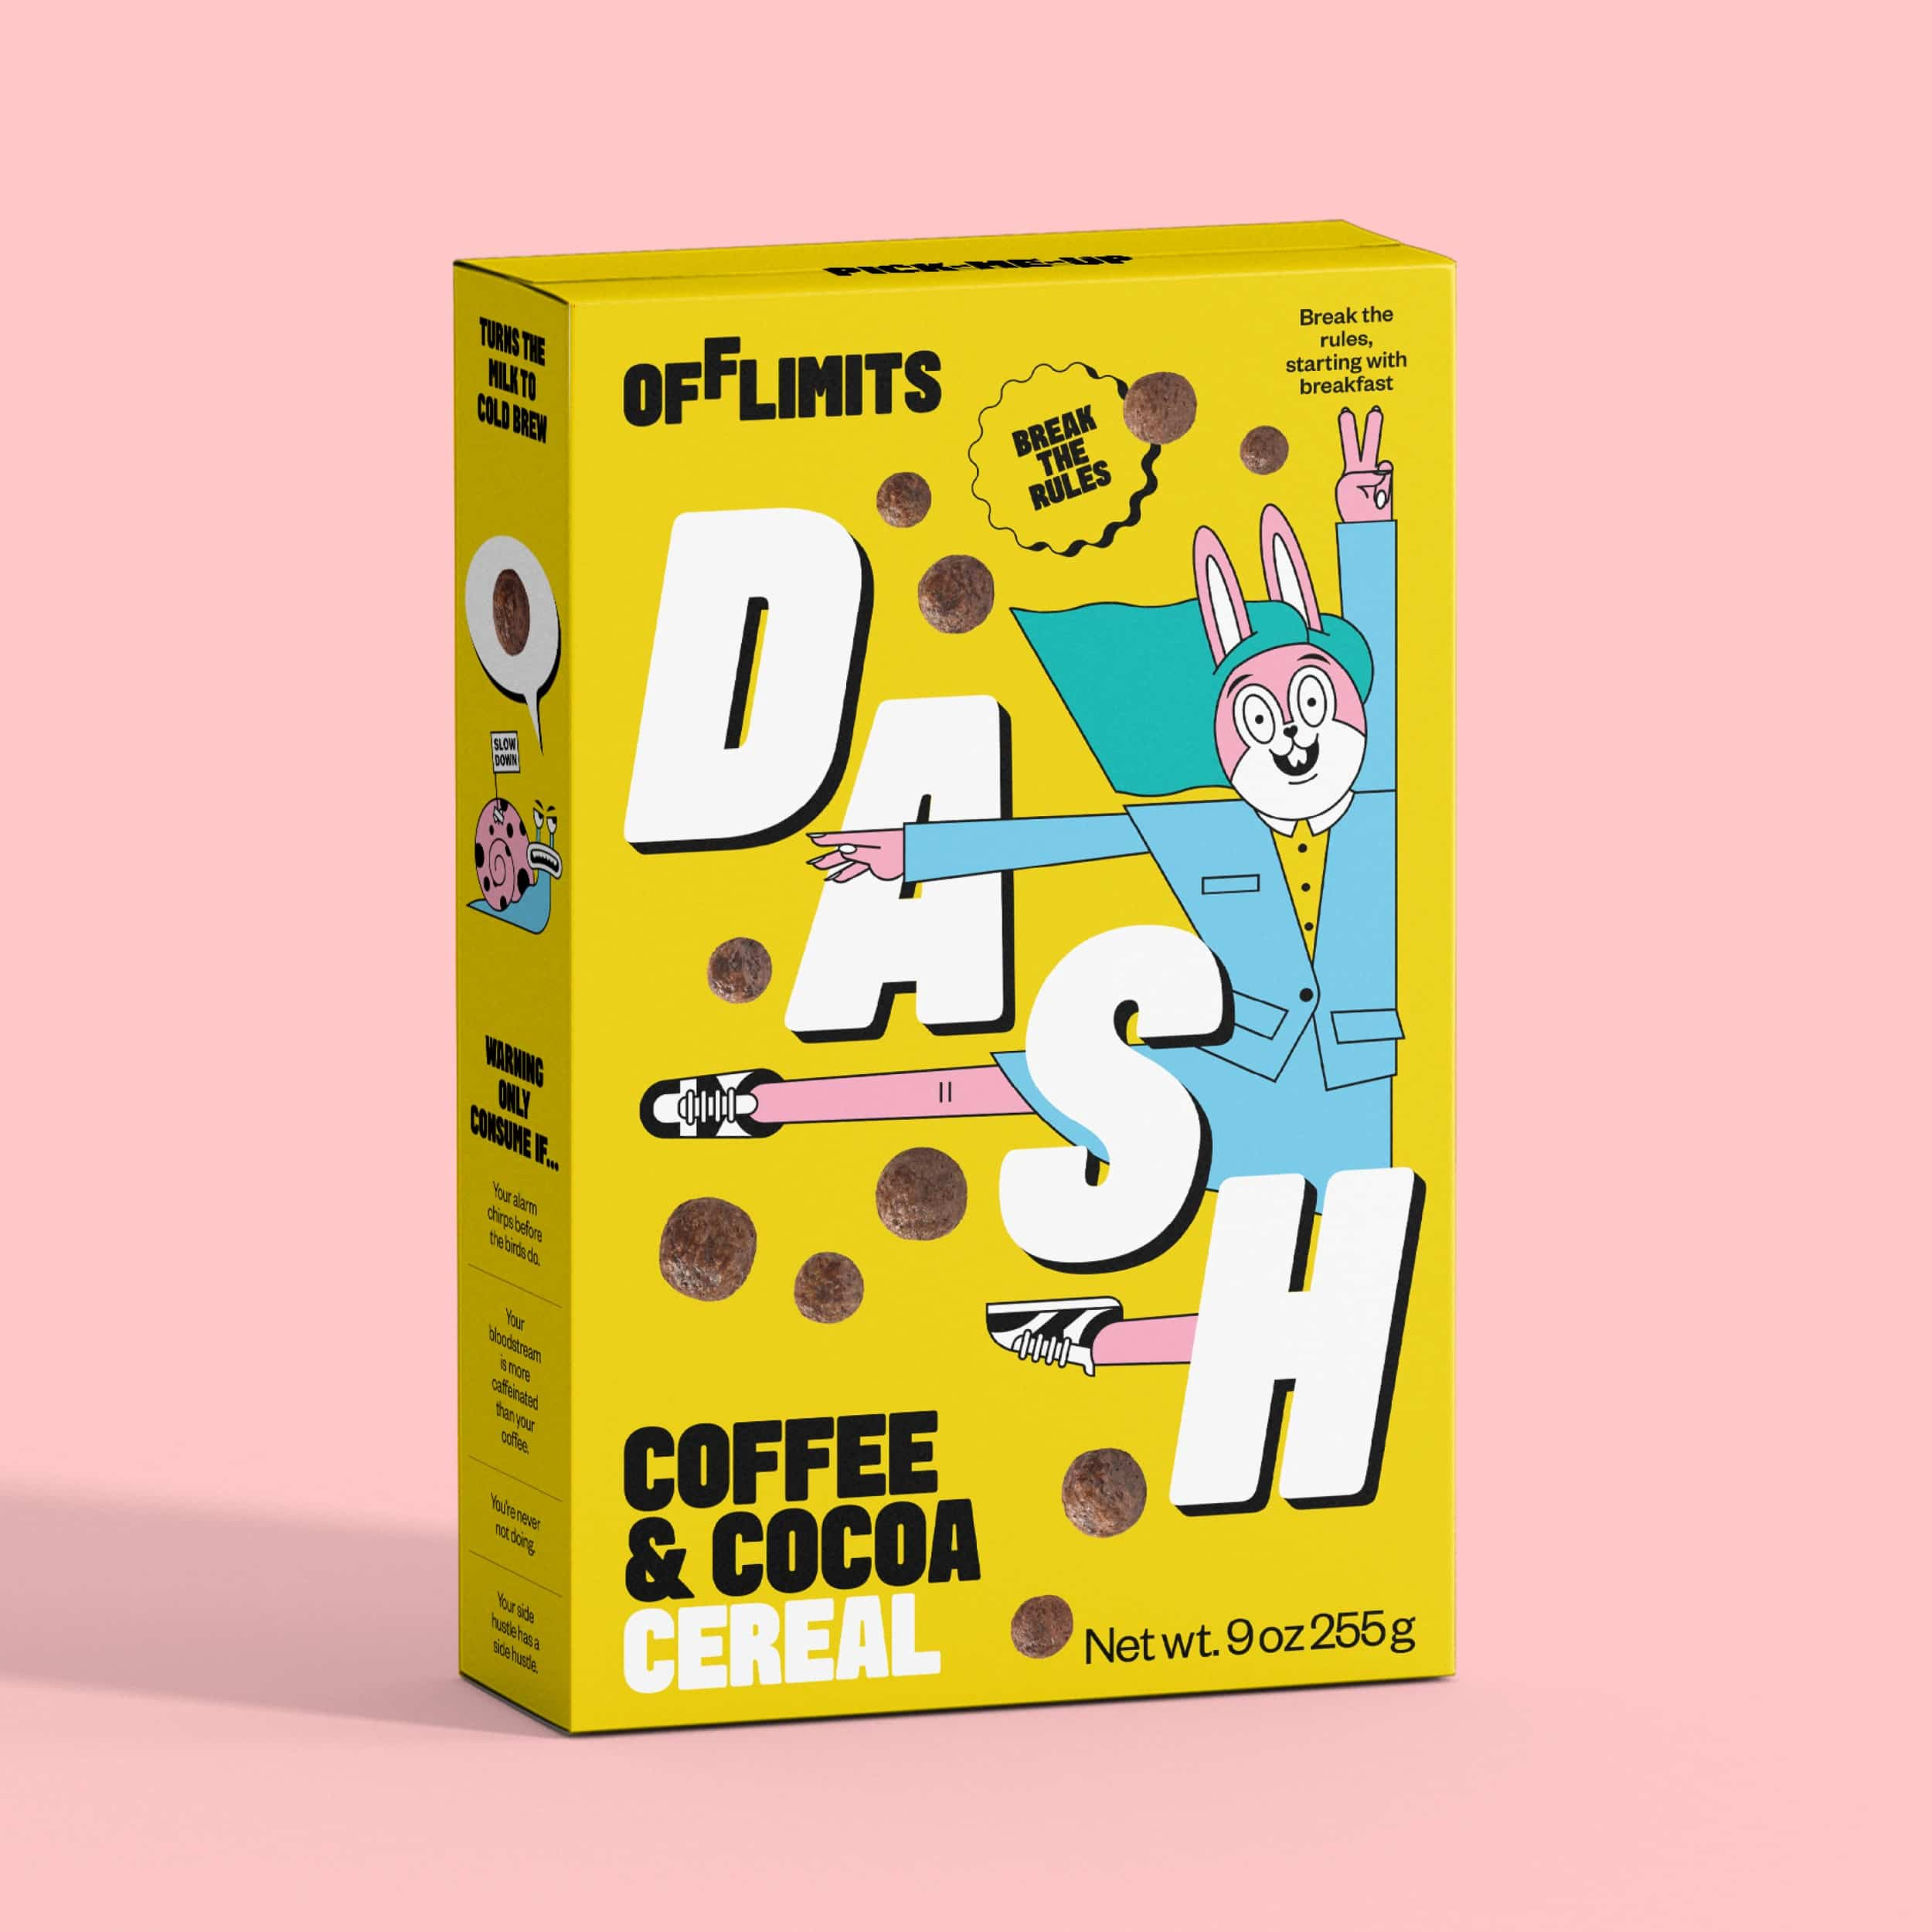 OffLimits Cereal launches with two flavors that scream counterculture 13